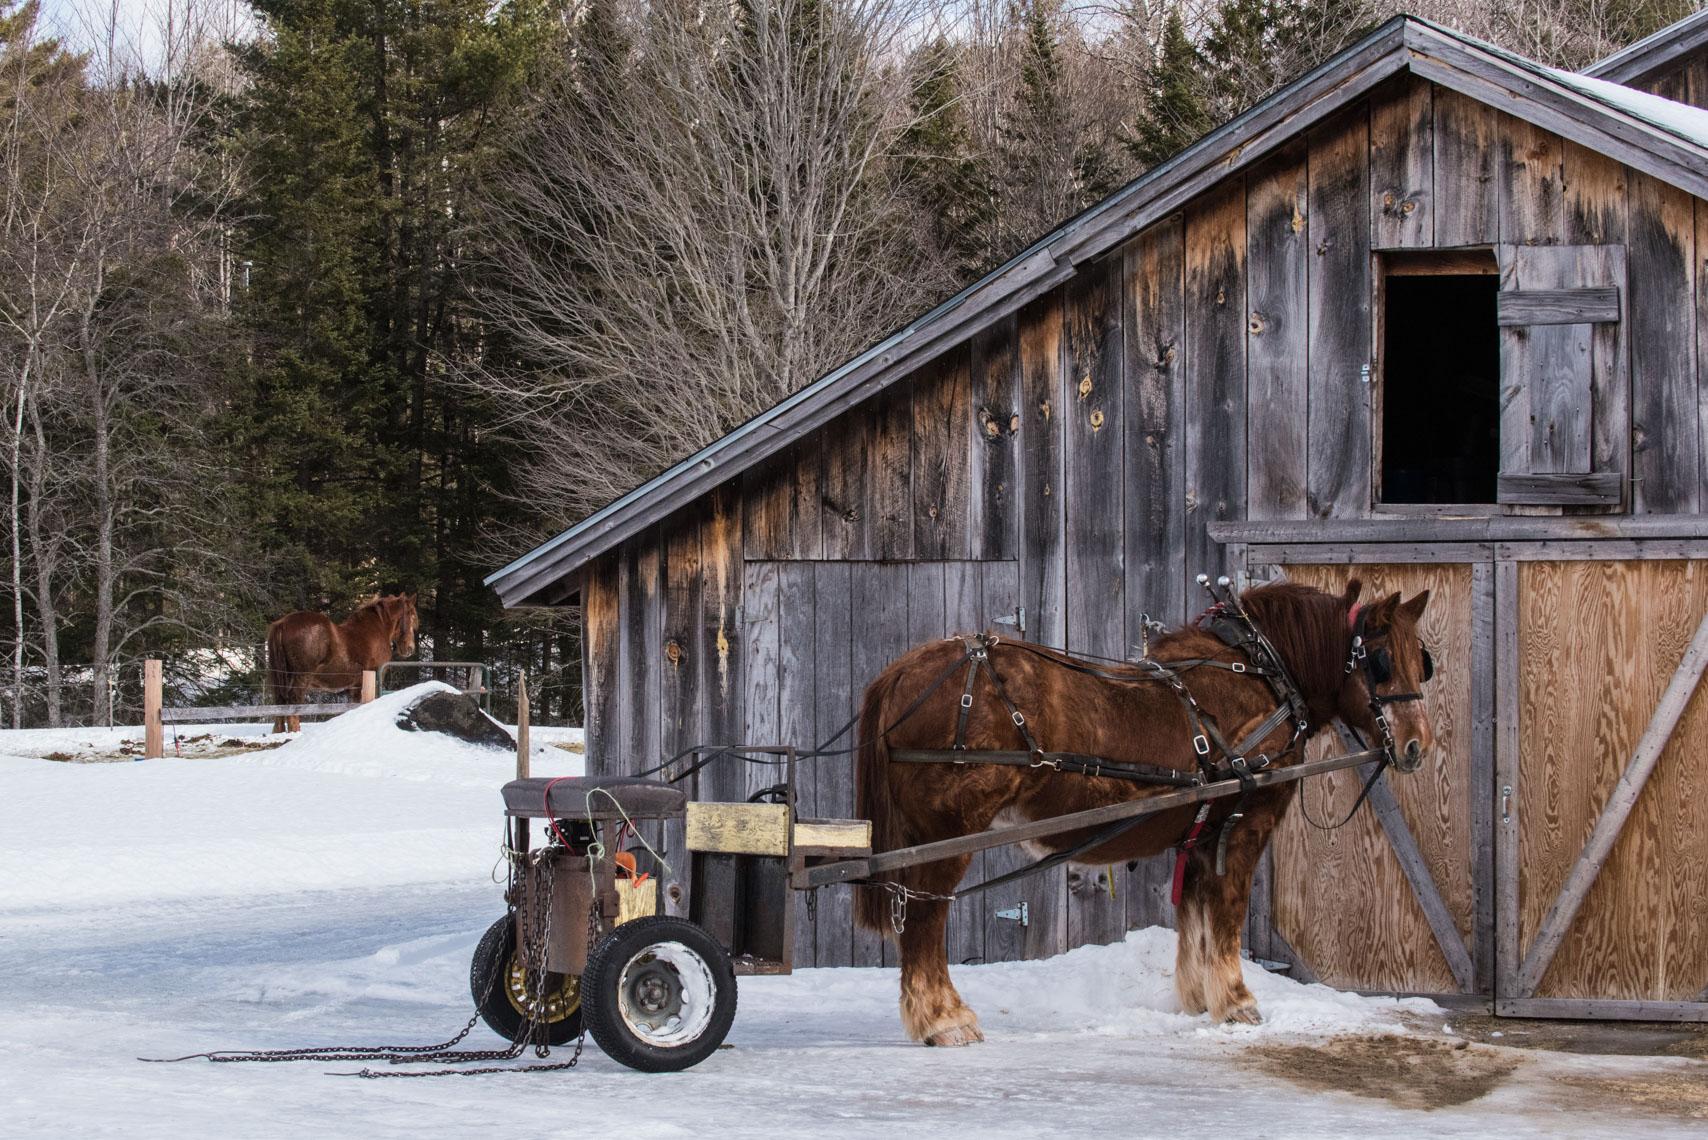 Horse logging in Milan, New Hampshire